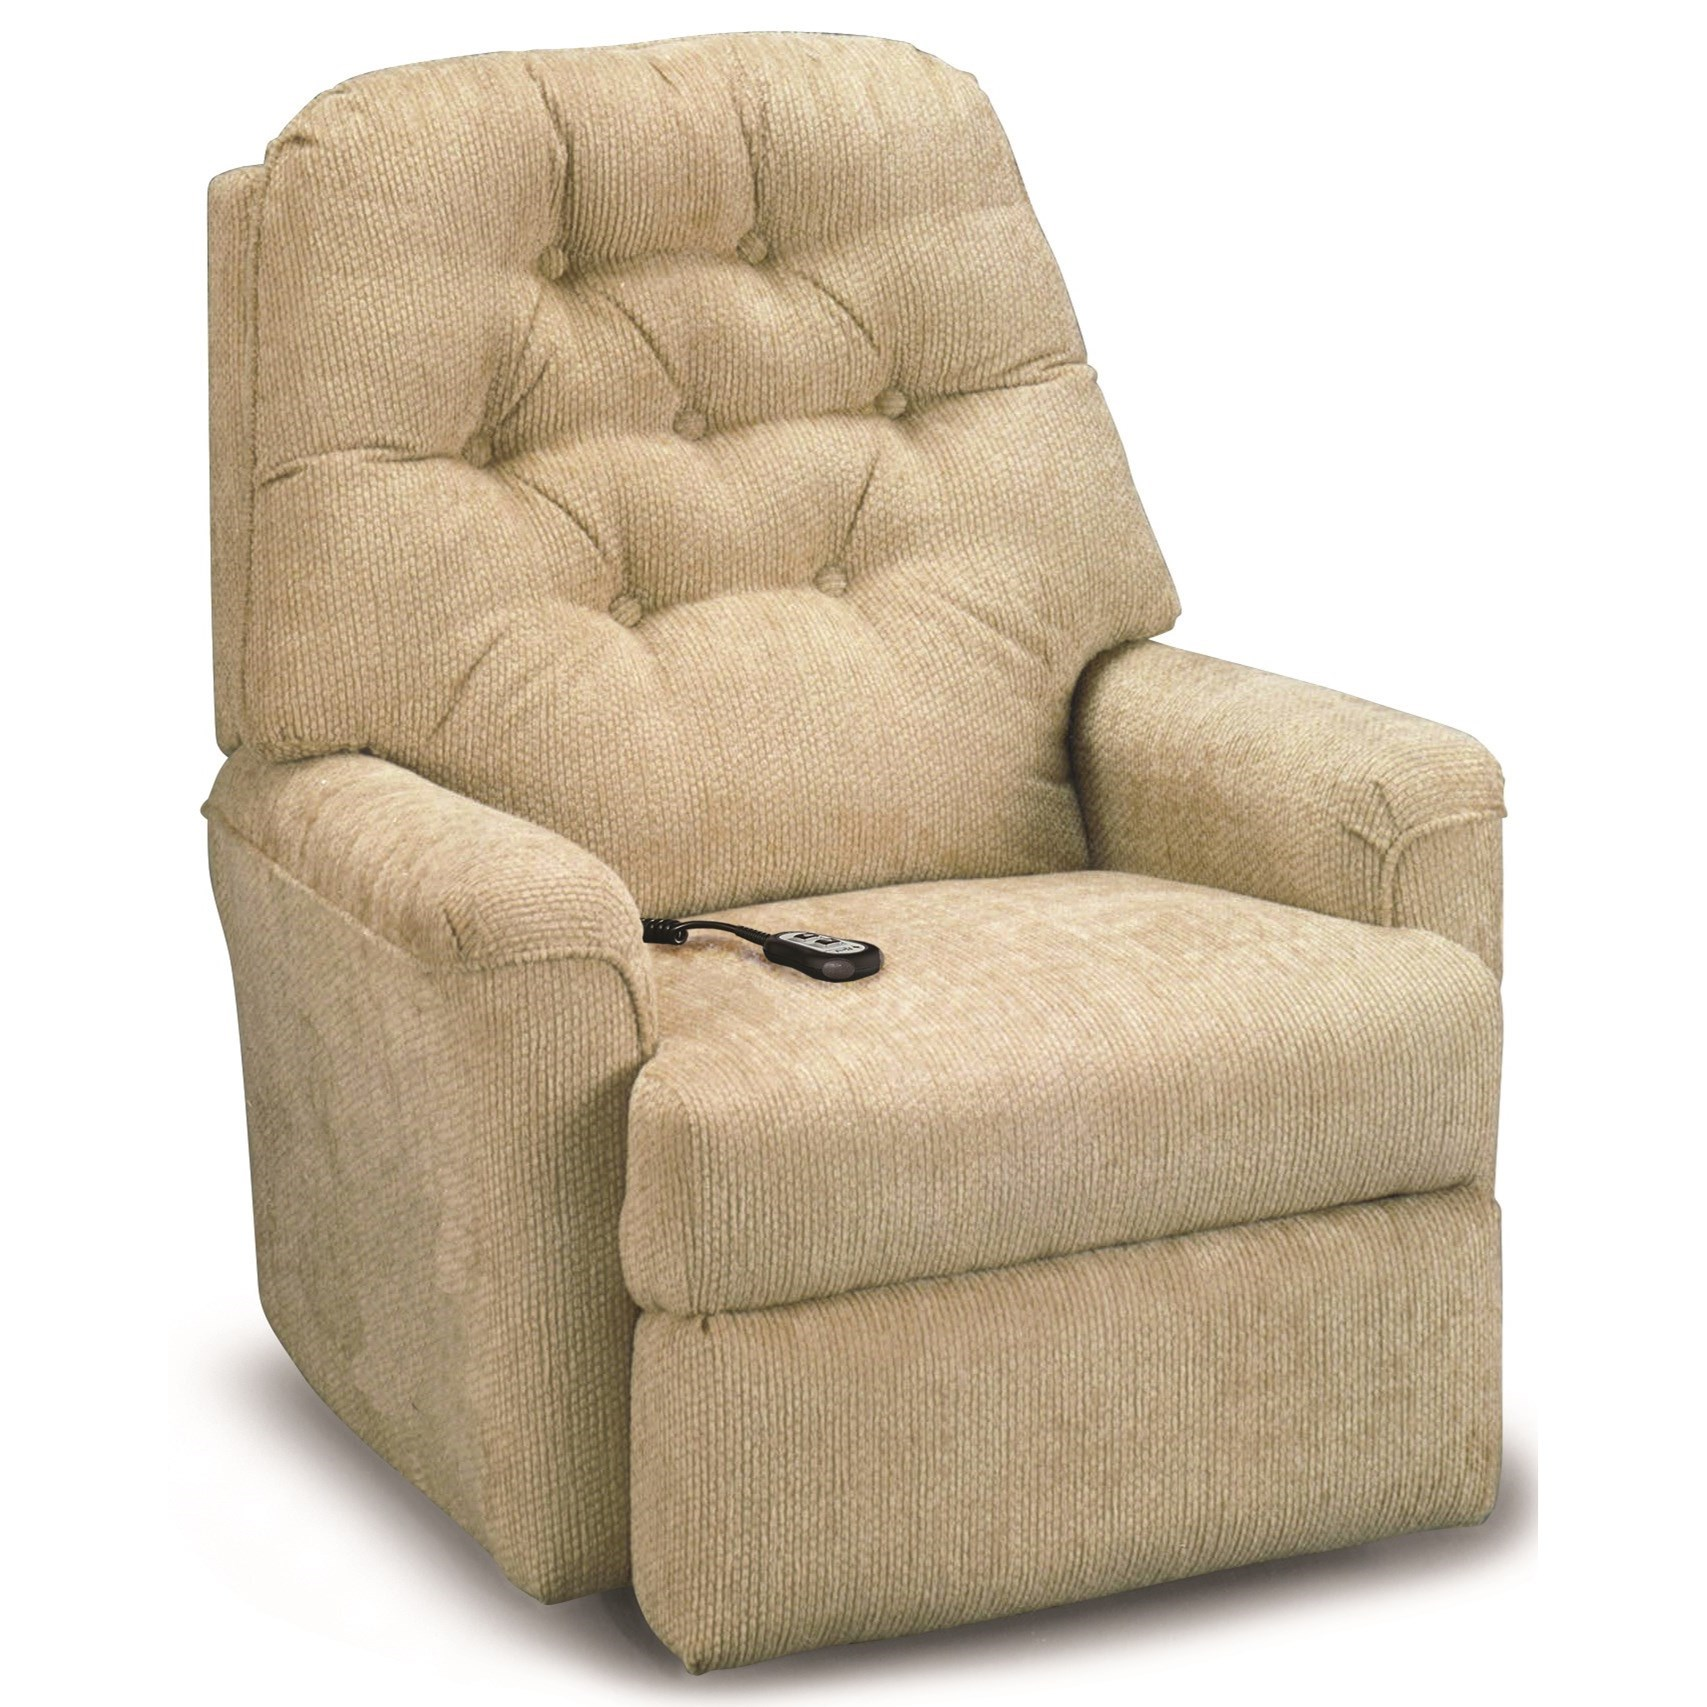 Best Home Furnishings Recliners - Petite Cara Lift Recliner - Item Number: 1AW41